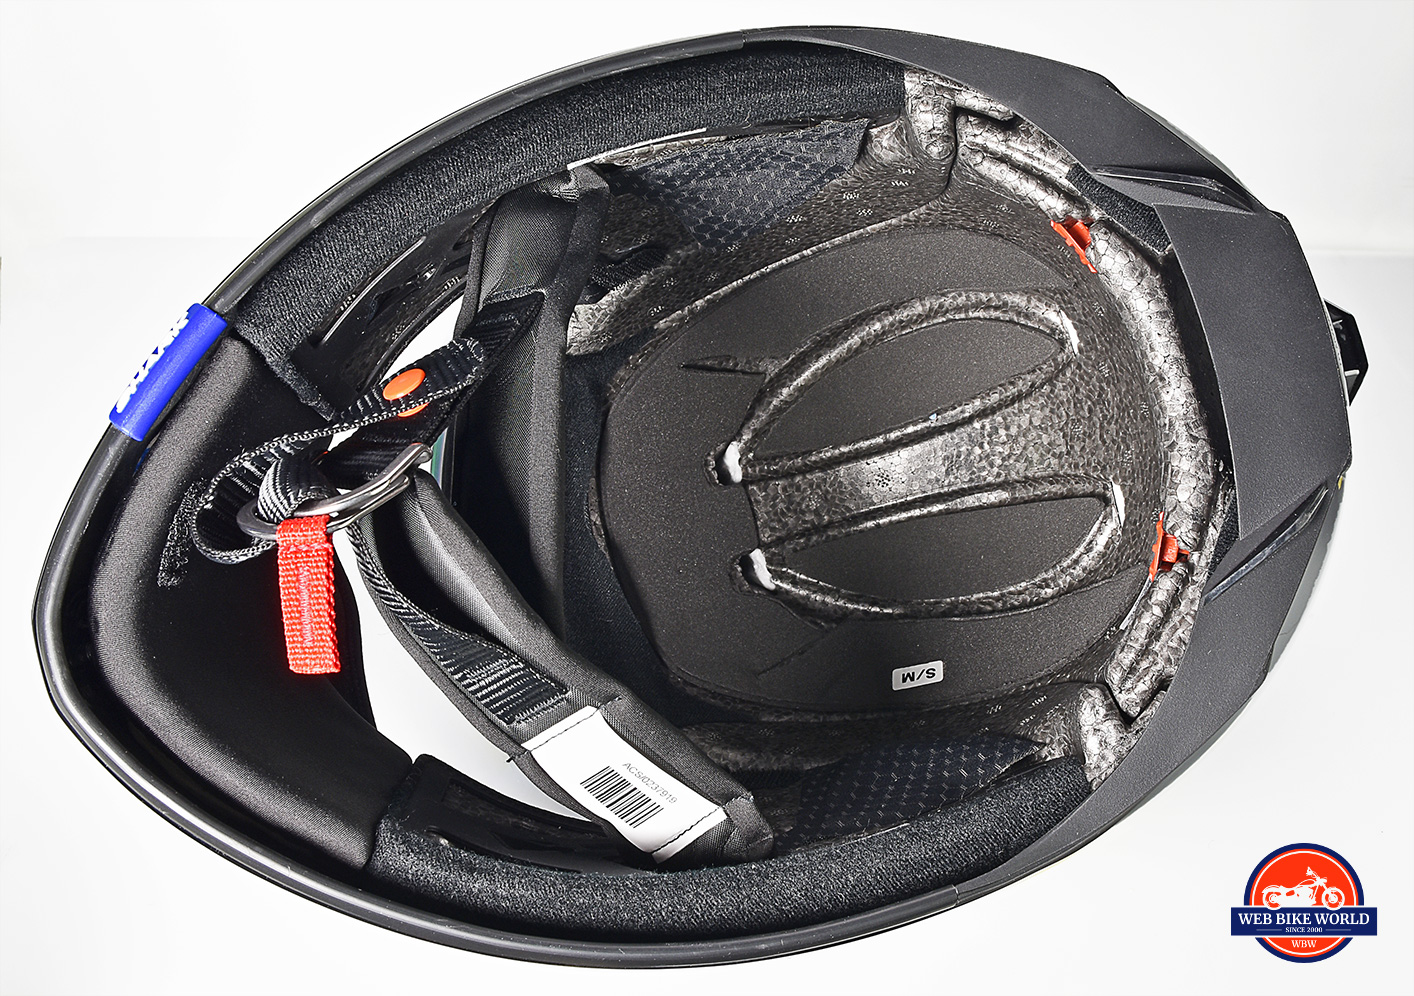 A view of the inside of the Shark Spartan GT Replikan helmet with the comfort liner and cheek pads removed.